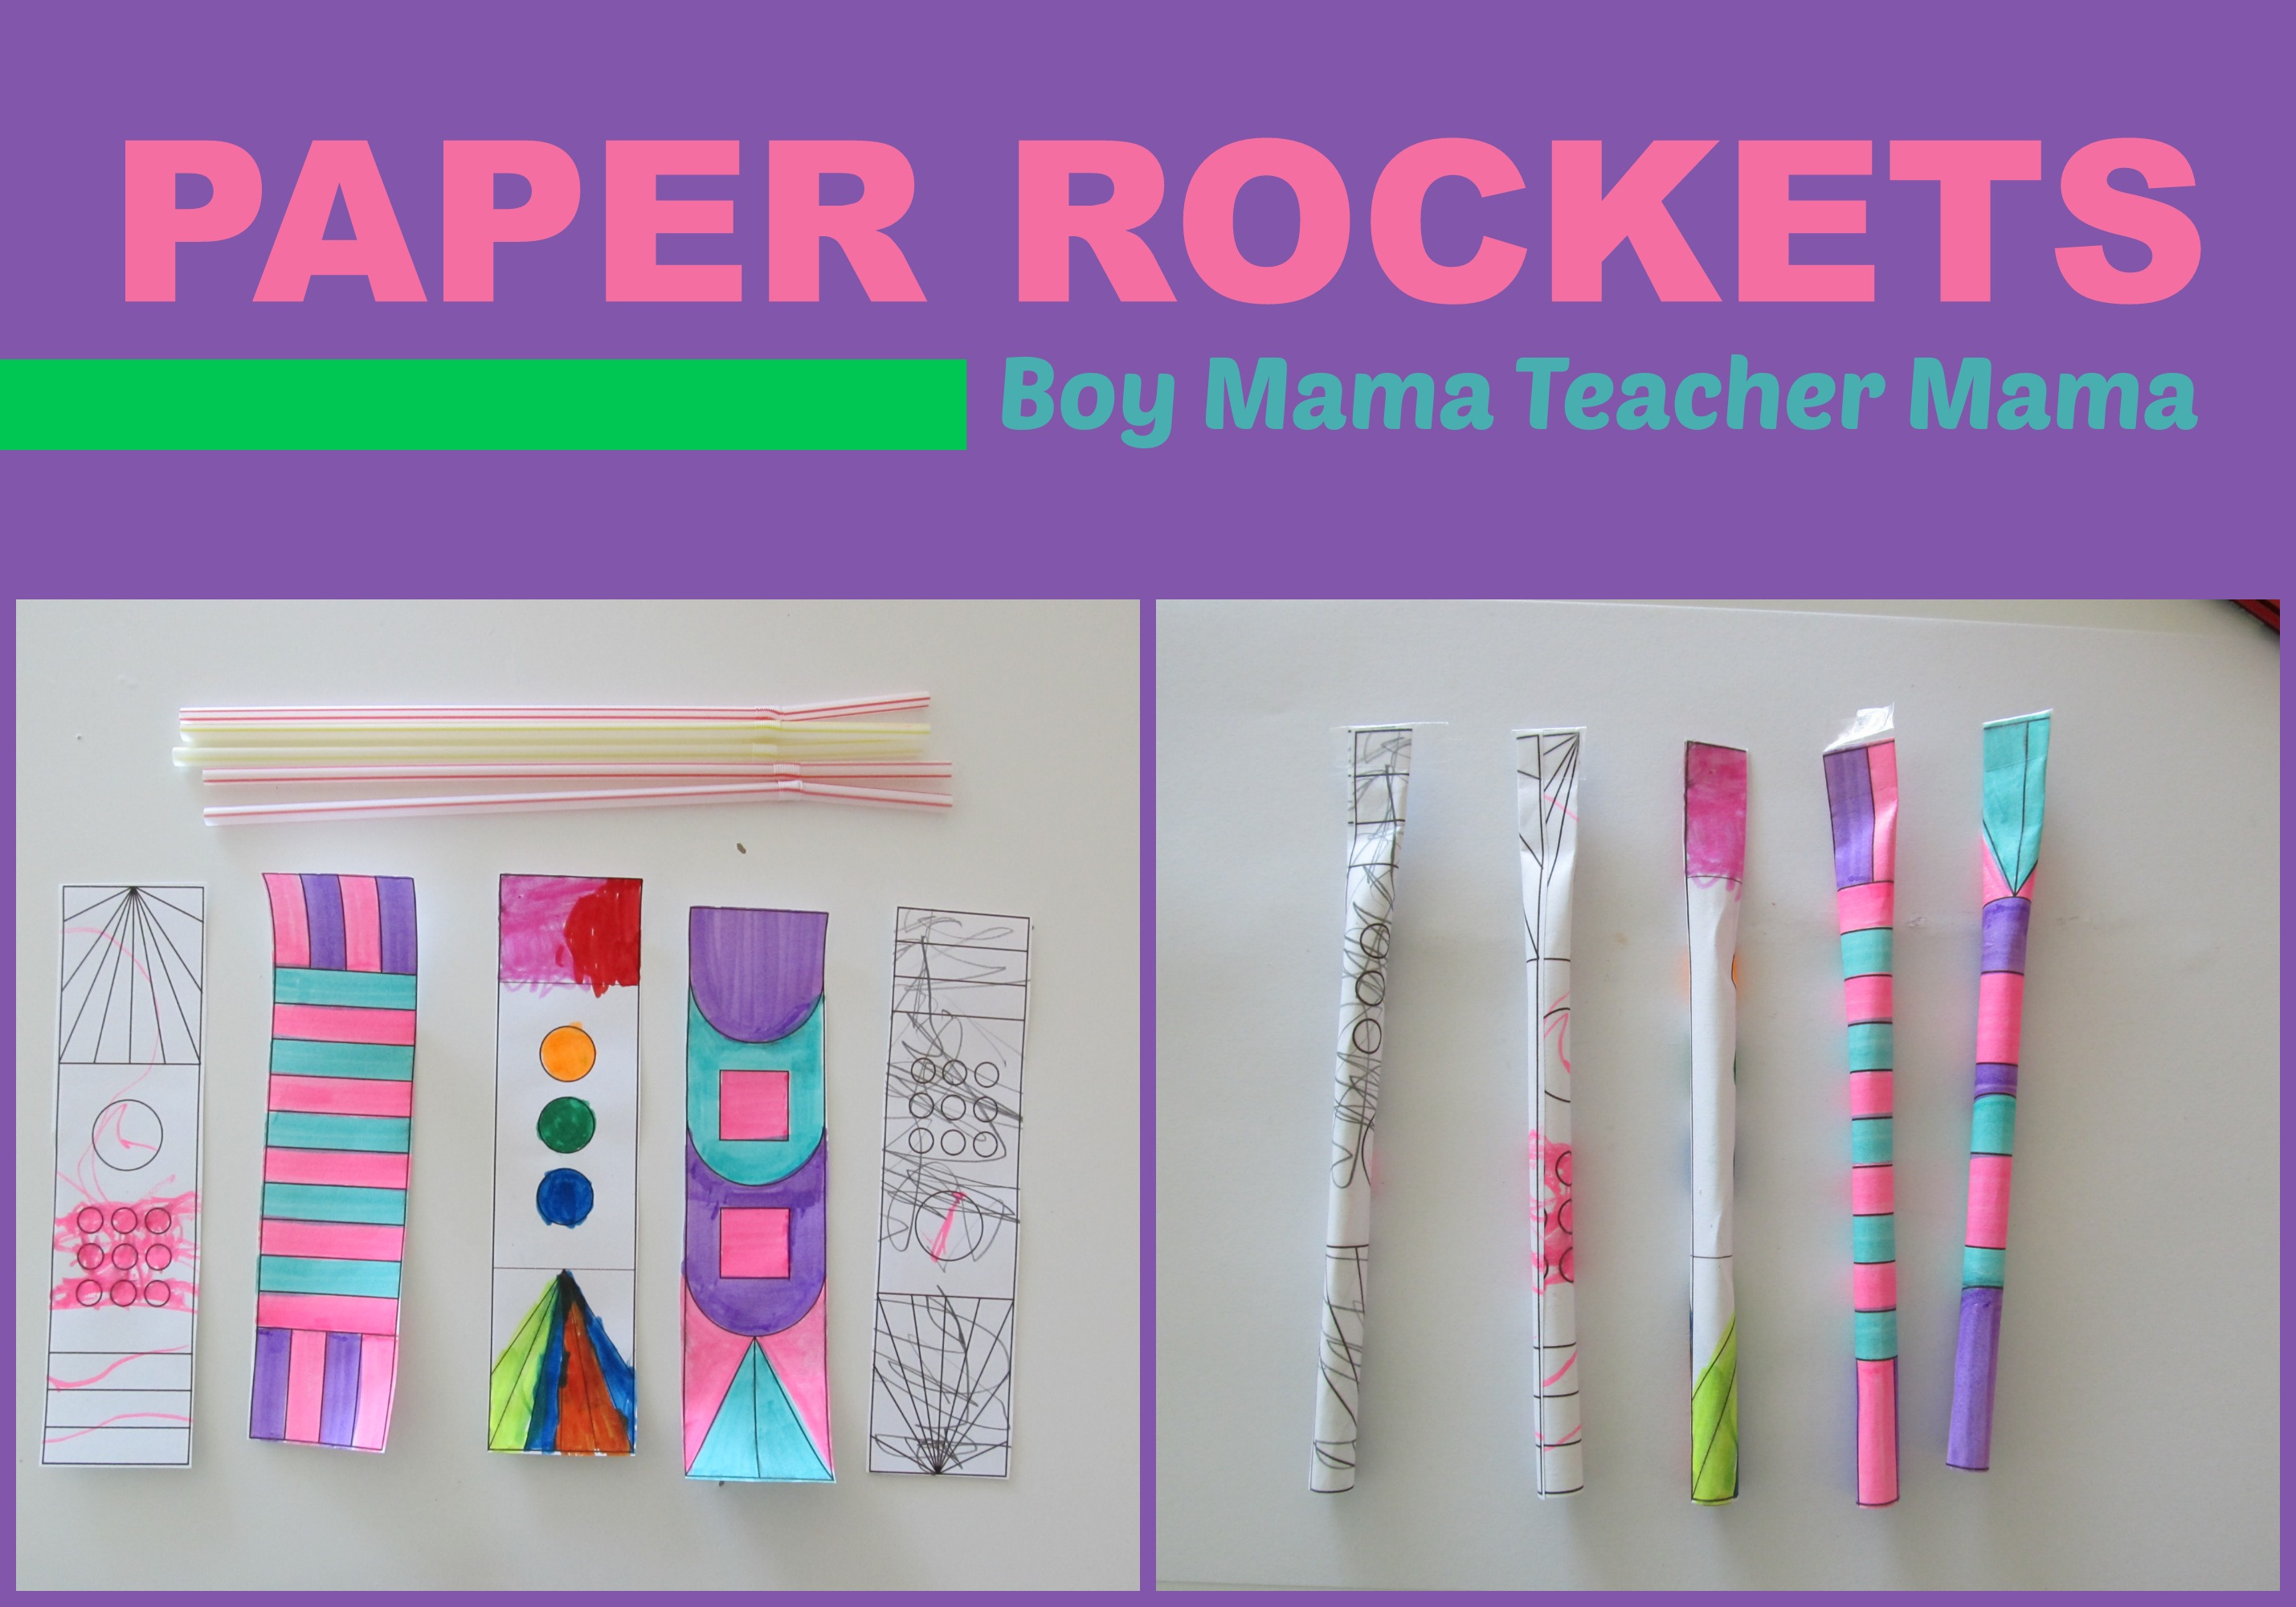 Boy mama paper rockets from picklebums boy mama teacher mama for Picklebums